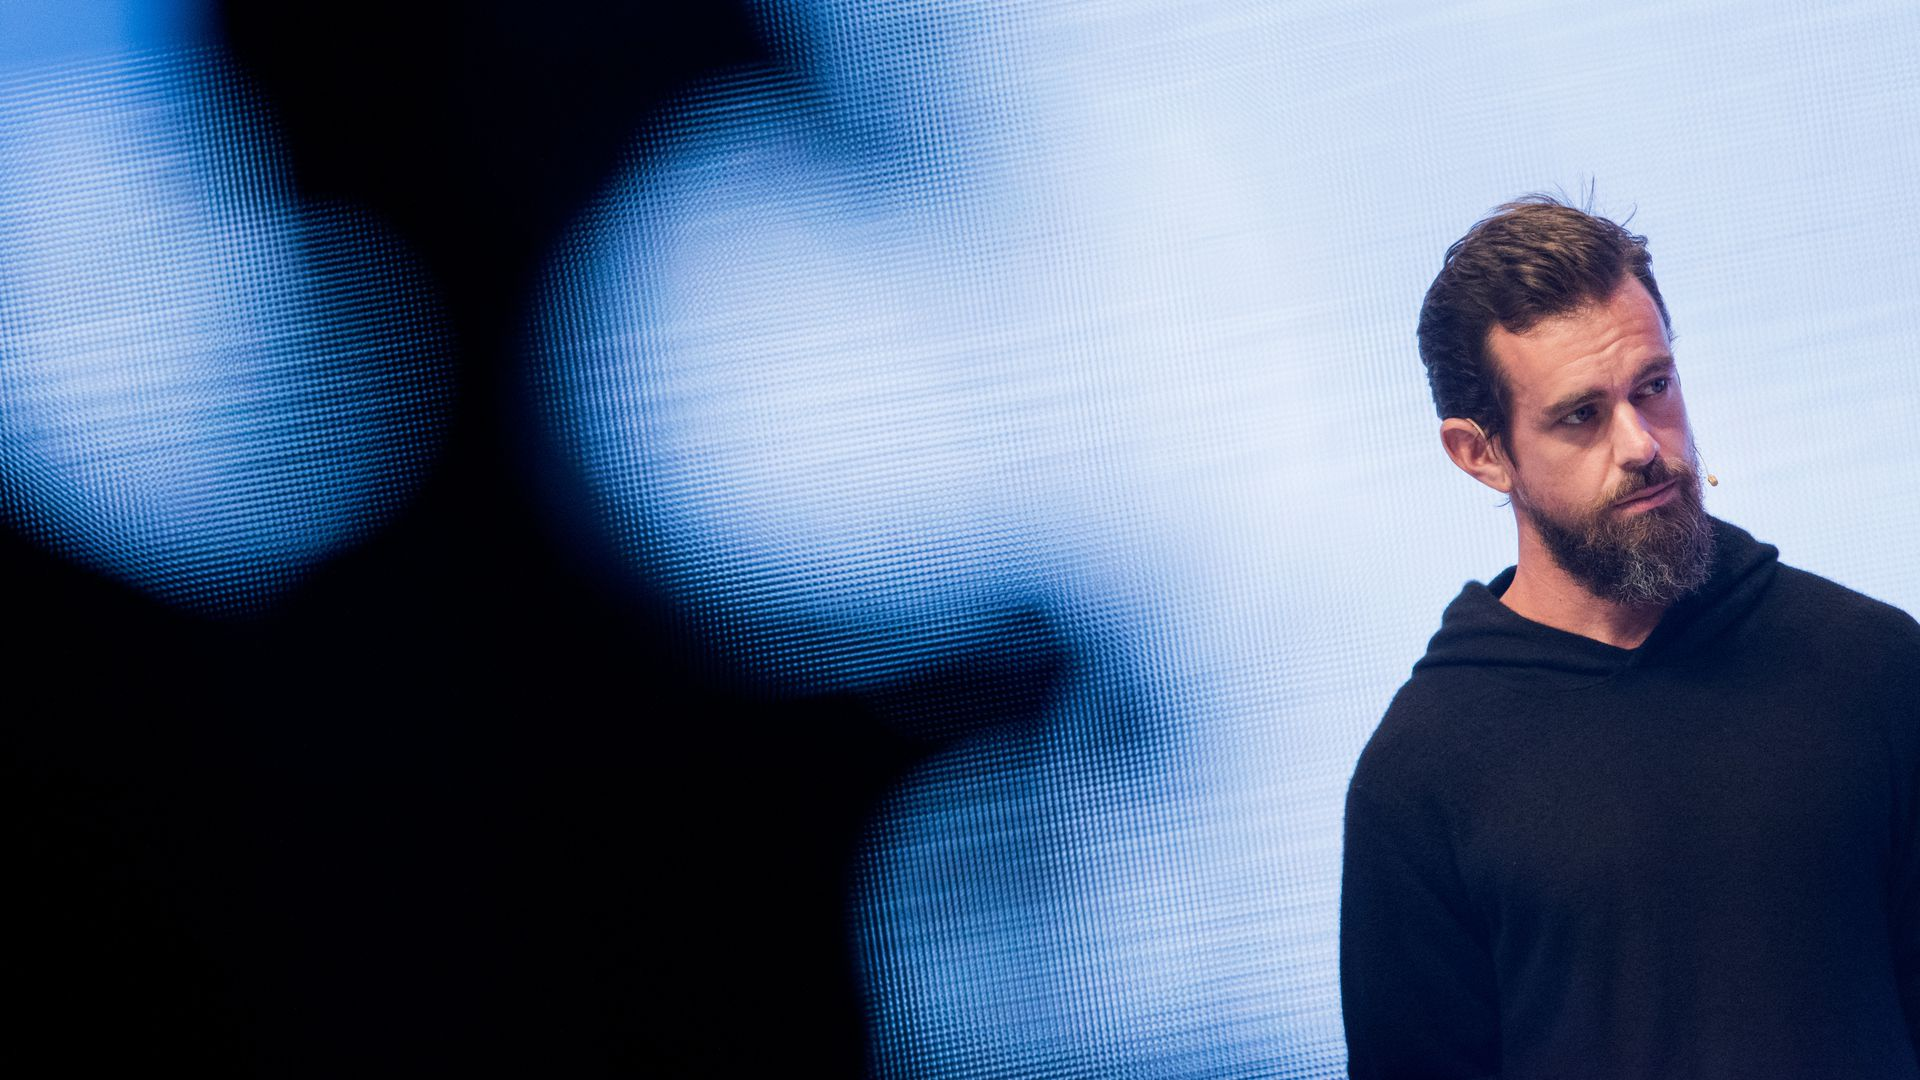 Jack Dorsey, Co-founder and CEO of Twitter. Photo: Rolf Vennenbernd/picture alliance via Getty Images